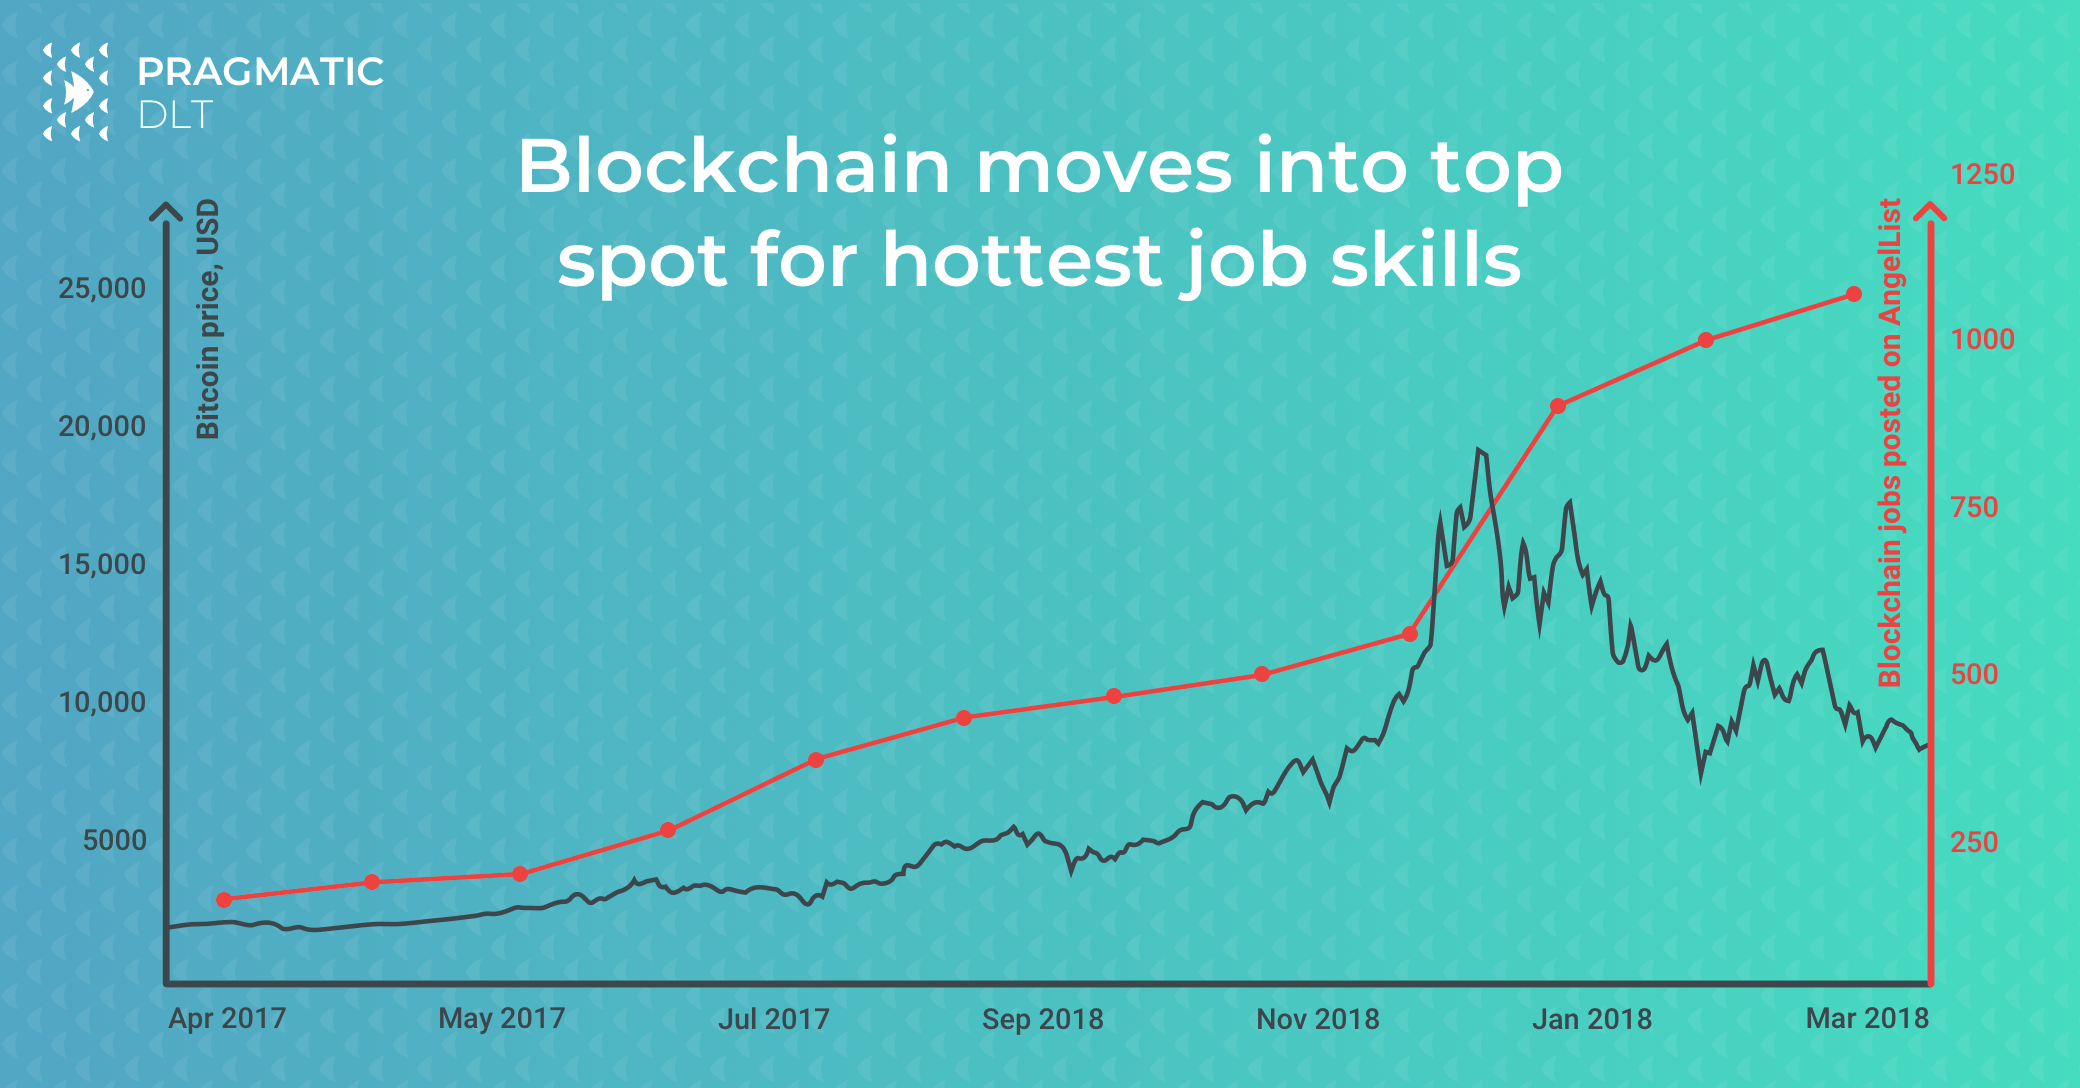 Blockchain moves into top spot for hottest job skills